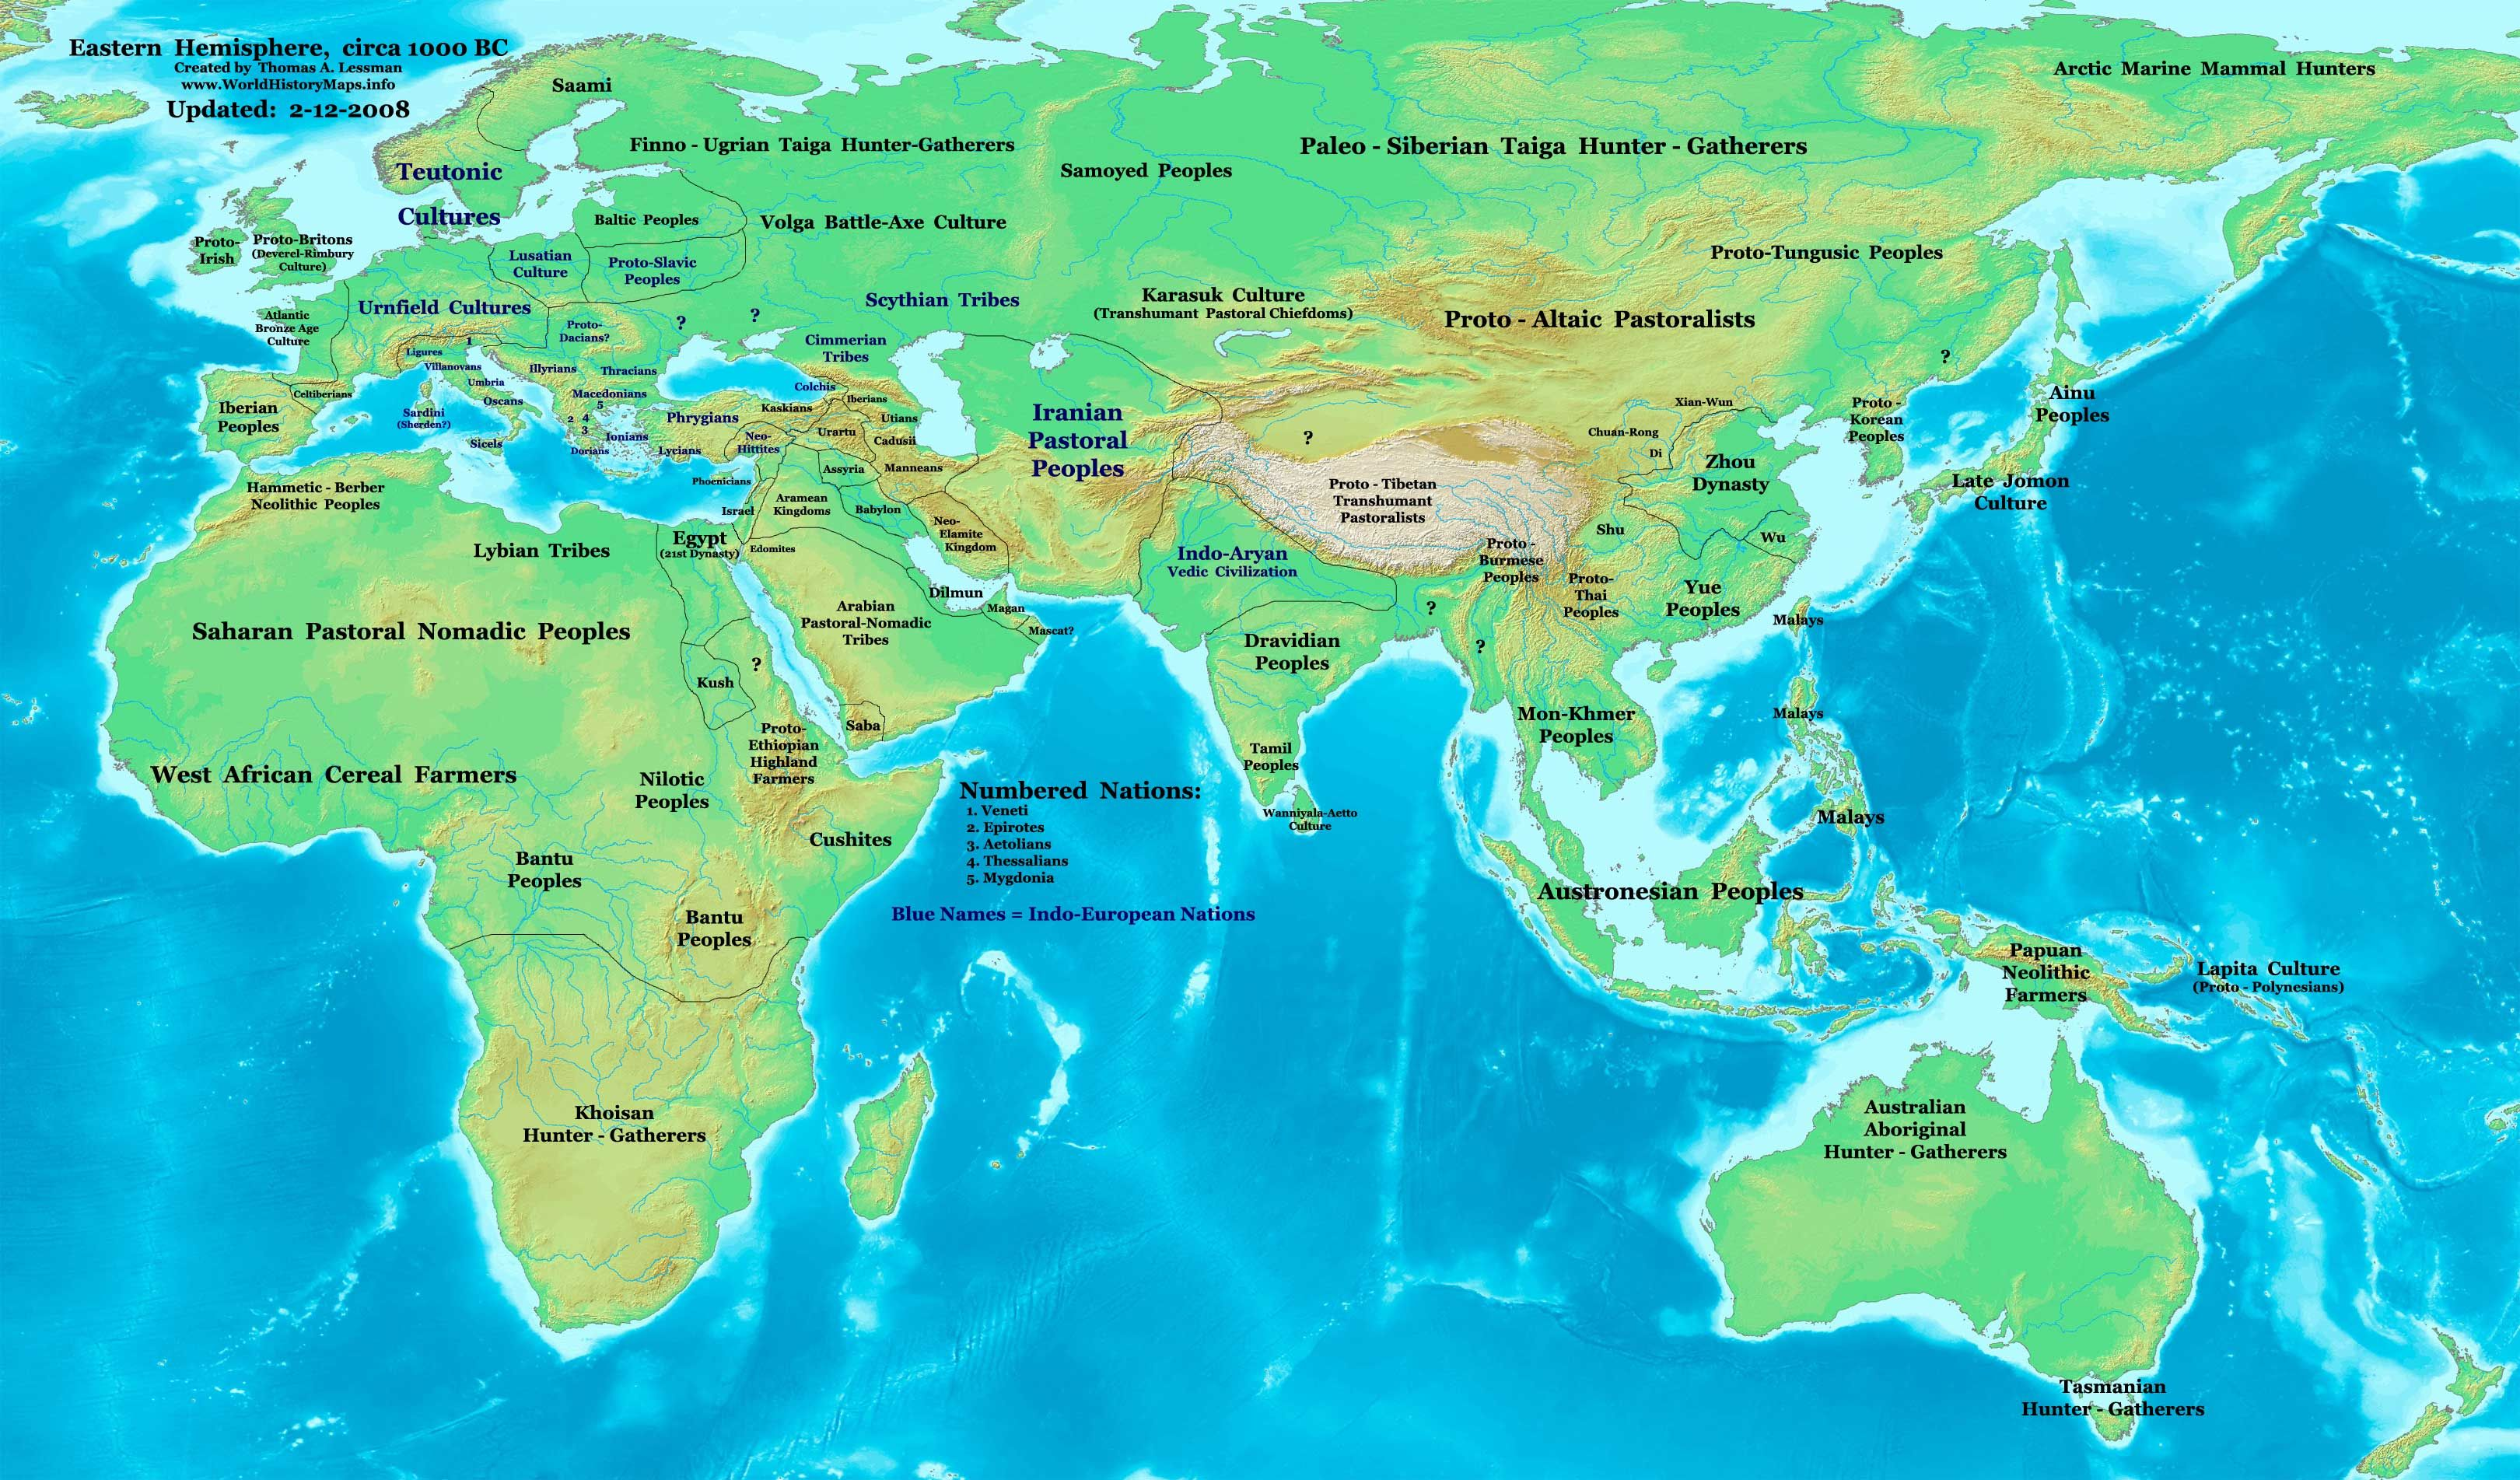 1000 bc history charts pinterest history and interesting history map of the eastern hemisphere in the year rome fell sciox Image collections